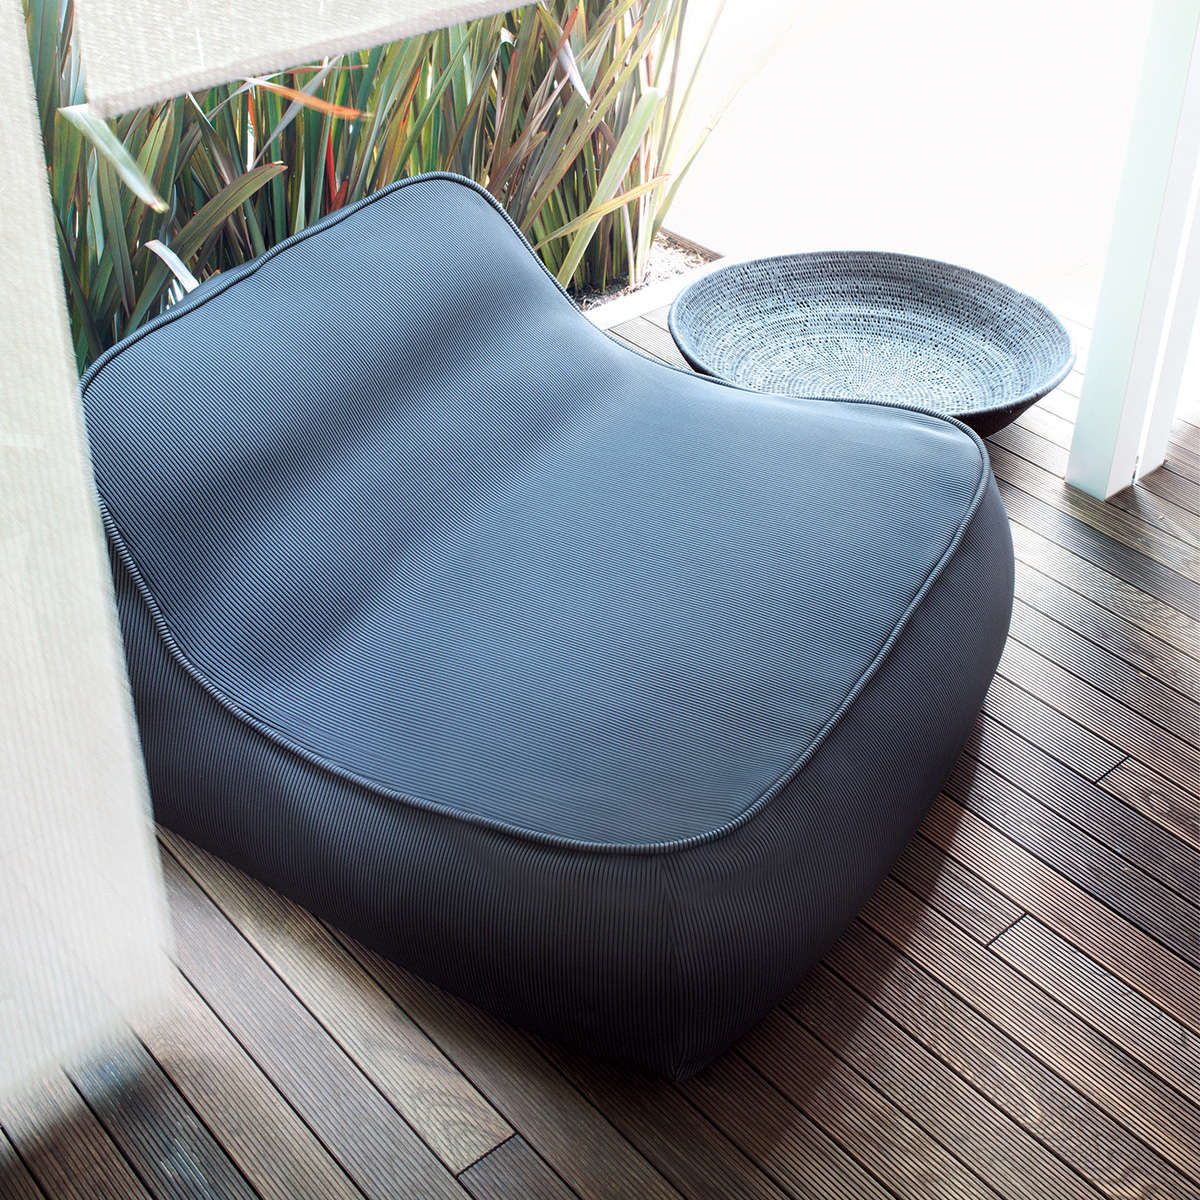 Float Paola Lenti Lounge Chair 3Jpg